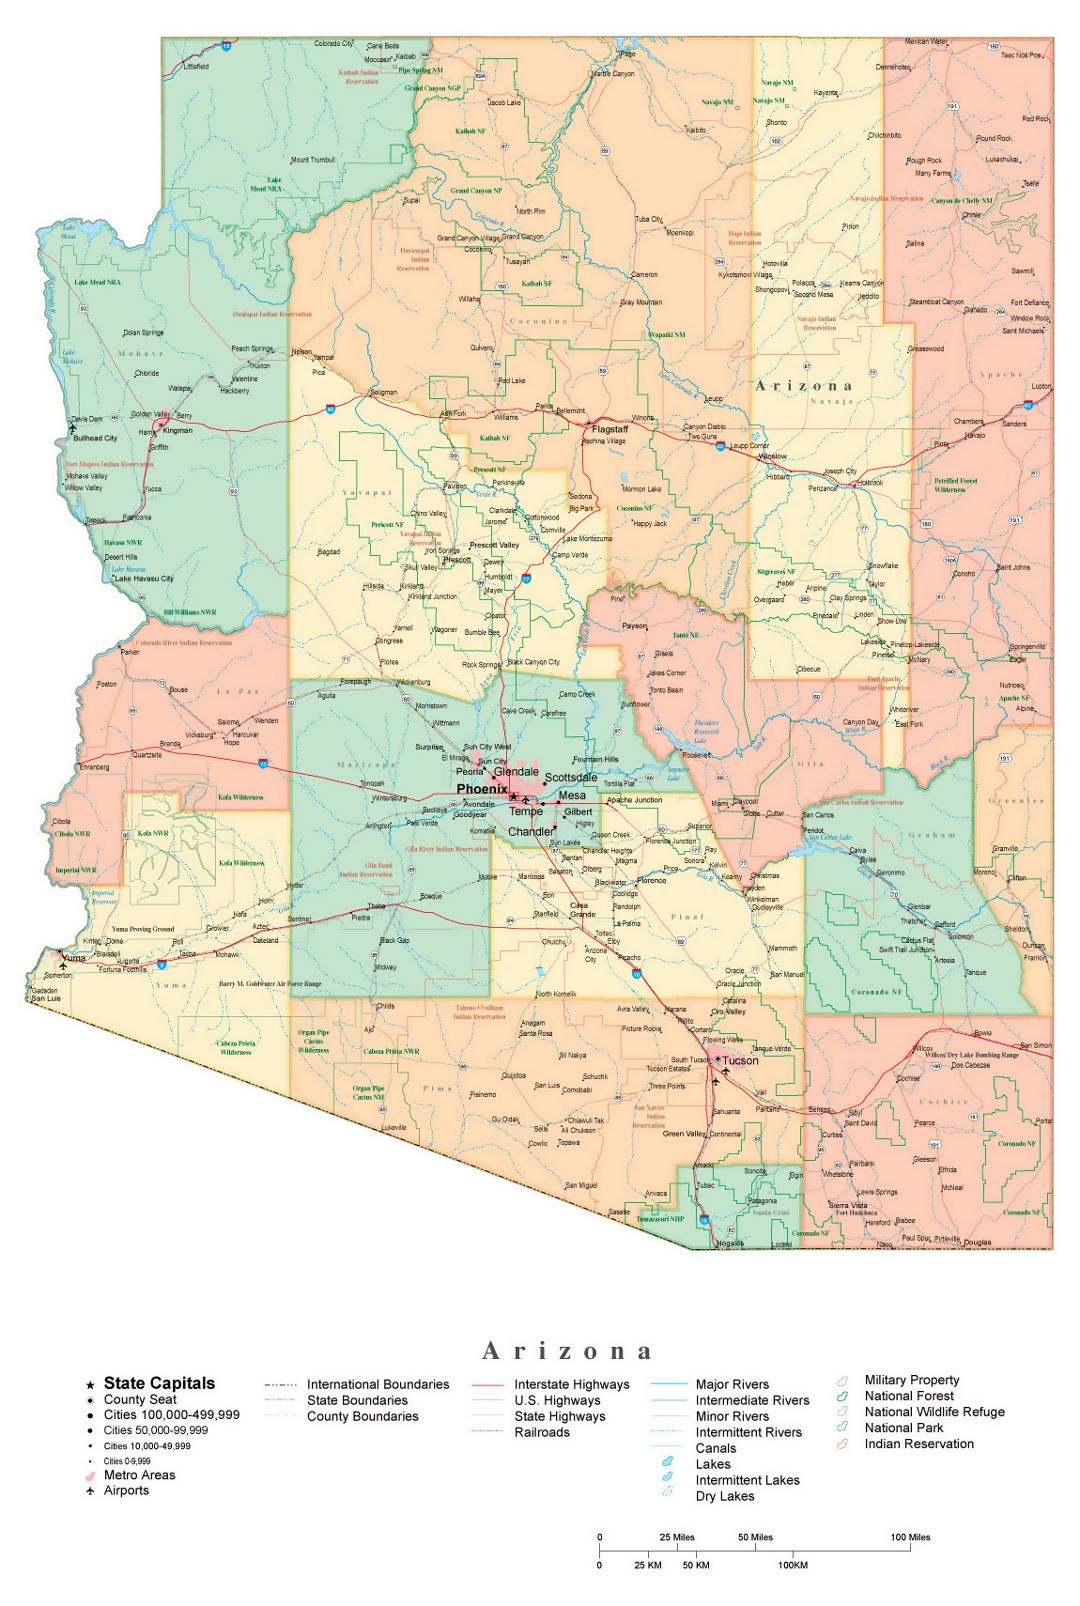 Administrative map of Arizona state